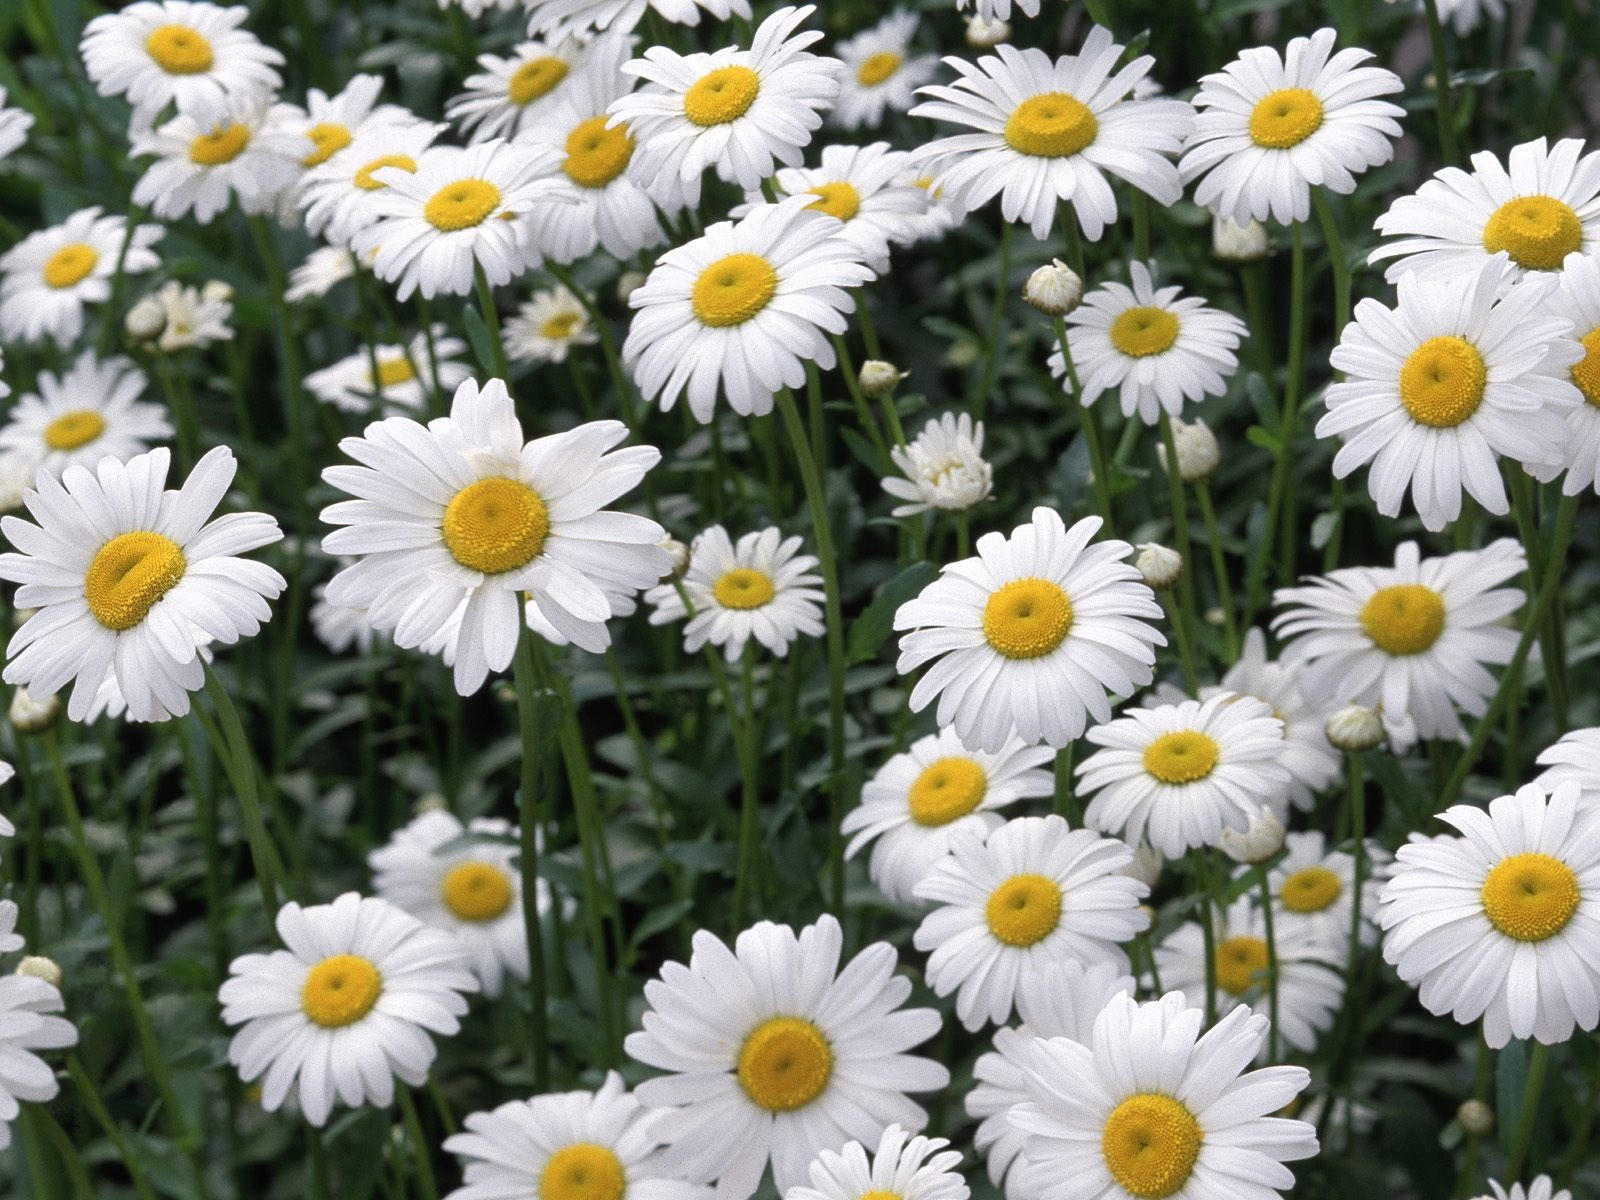 Daisies-by-Maximilian-Meyer-on-FL-Flowers-HDQ-KB-wallpaper-wpc5803901